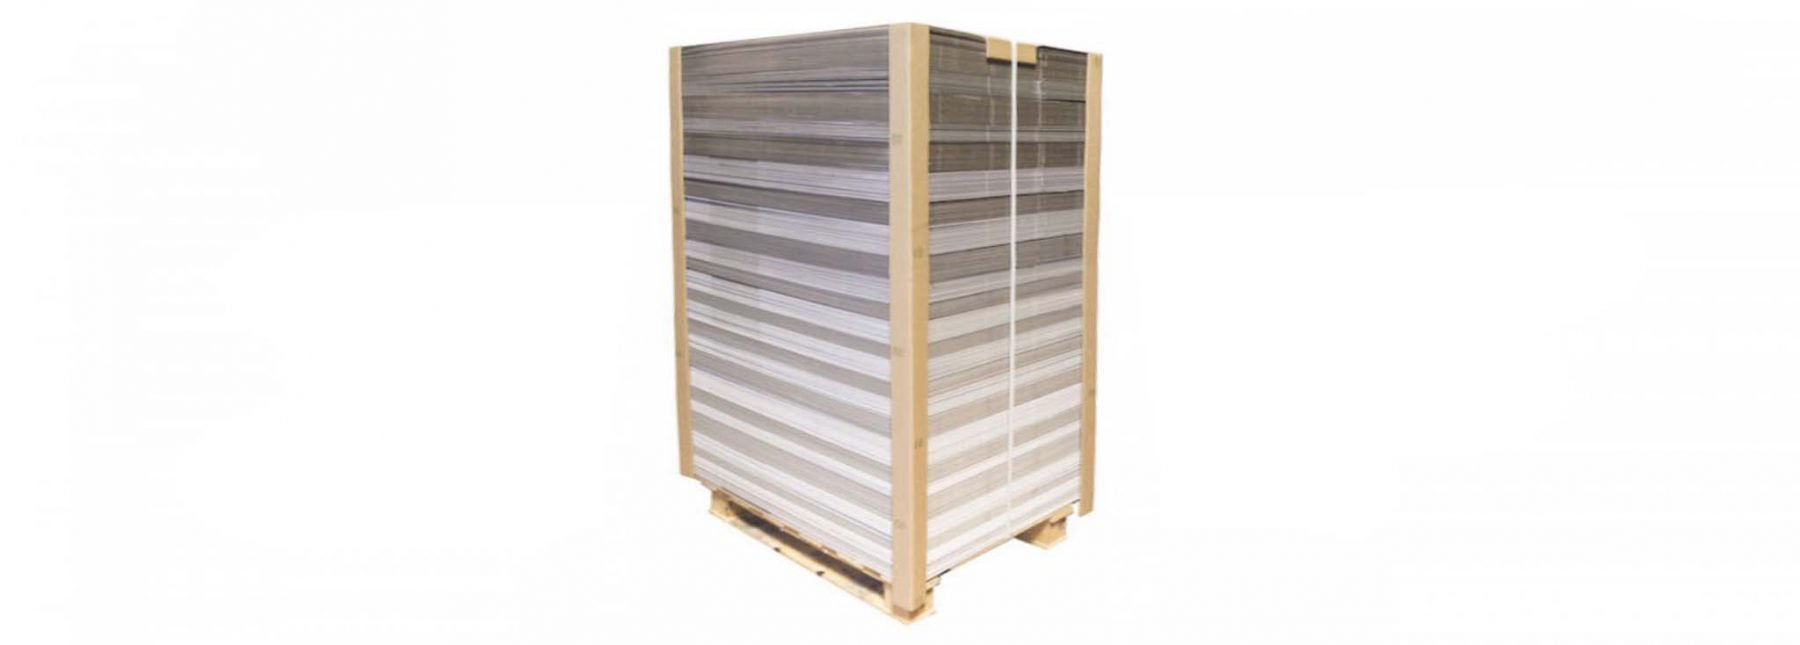 Conditioning pallets for storage 1